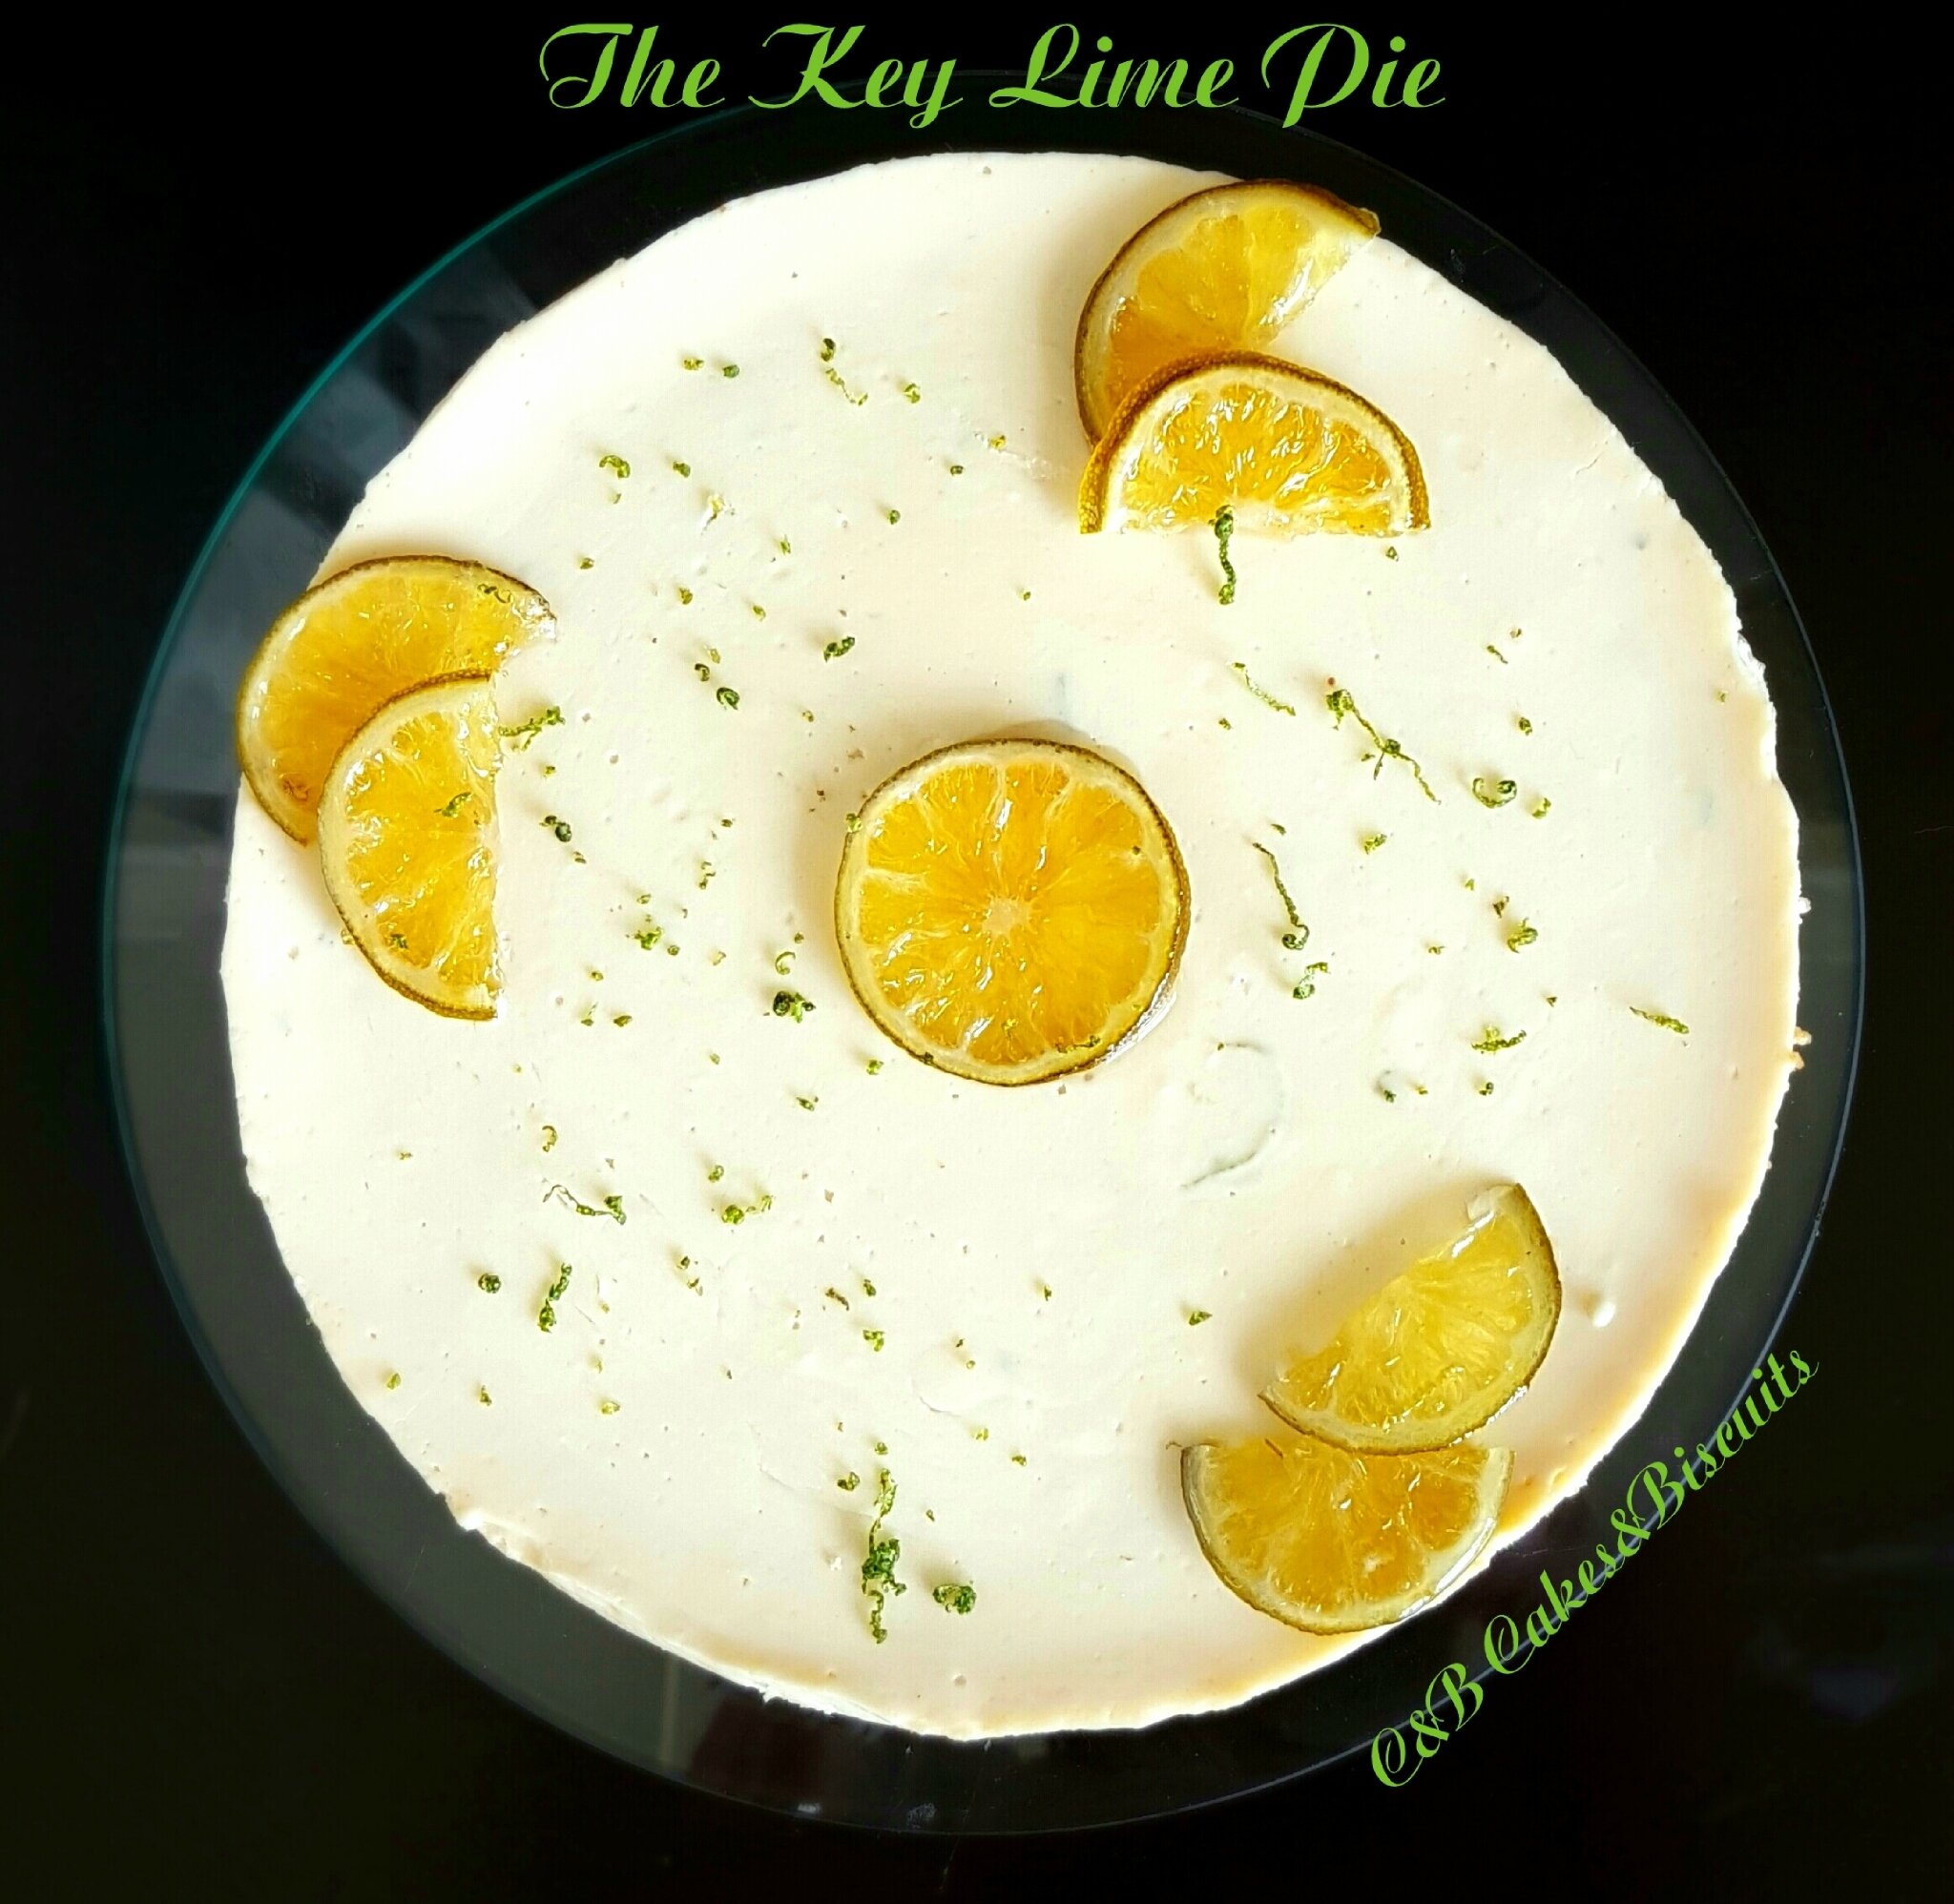 The Key Lime Pie